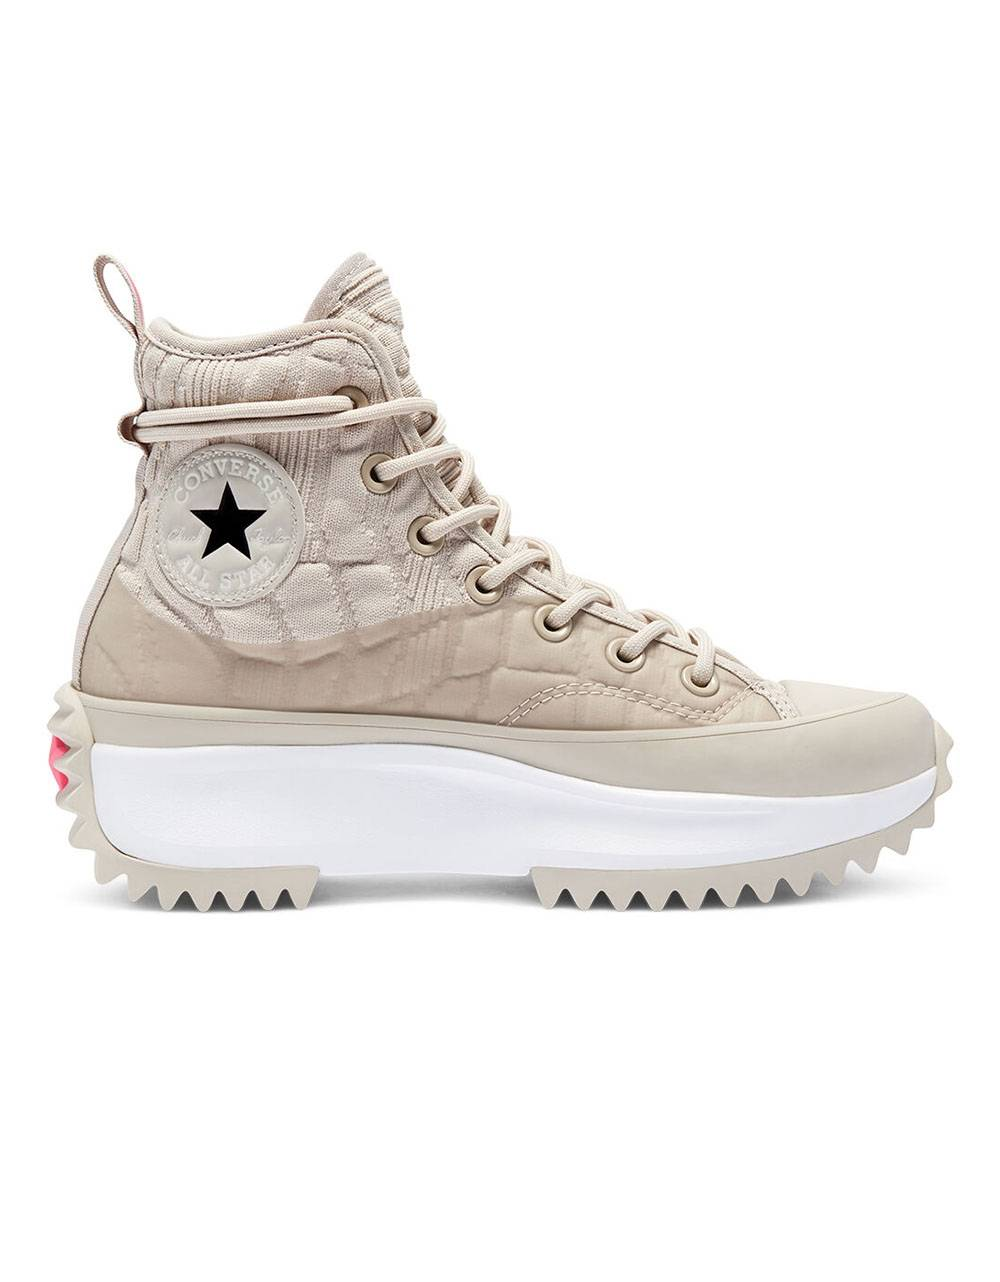 Converse Woman Digital Terrain Run Star Hike High Top - string/white Converse Sneakers 105,74 €